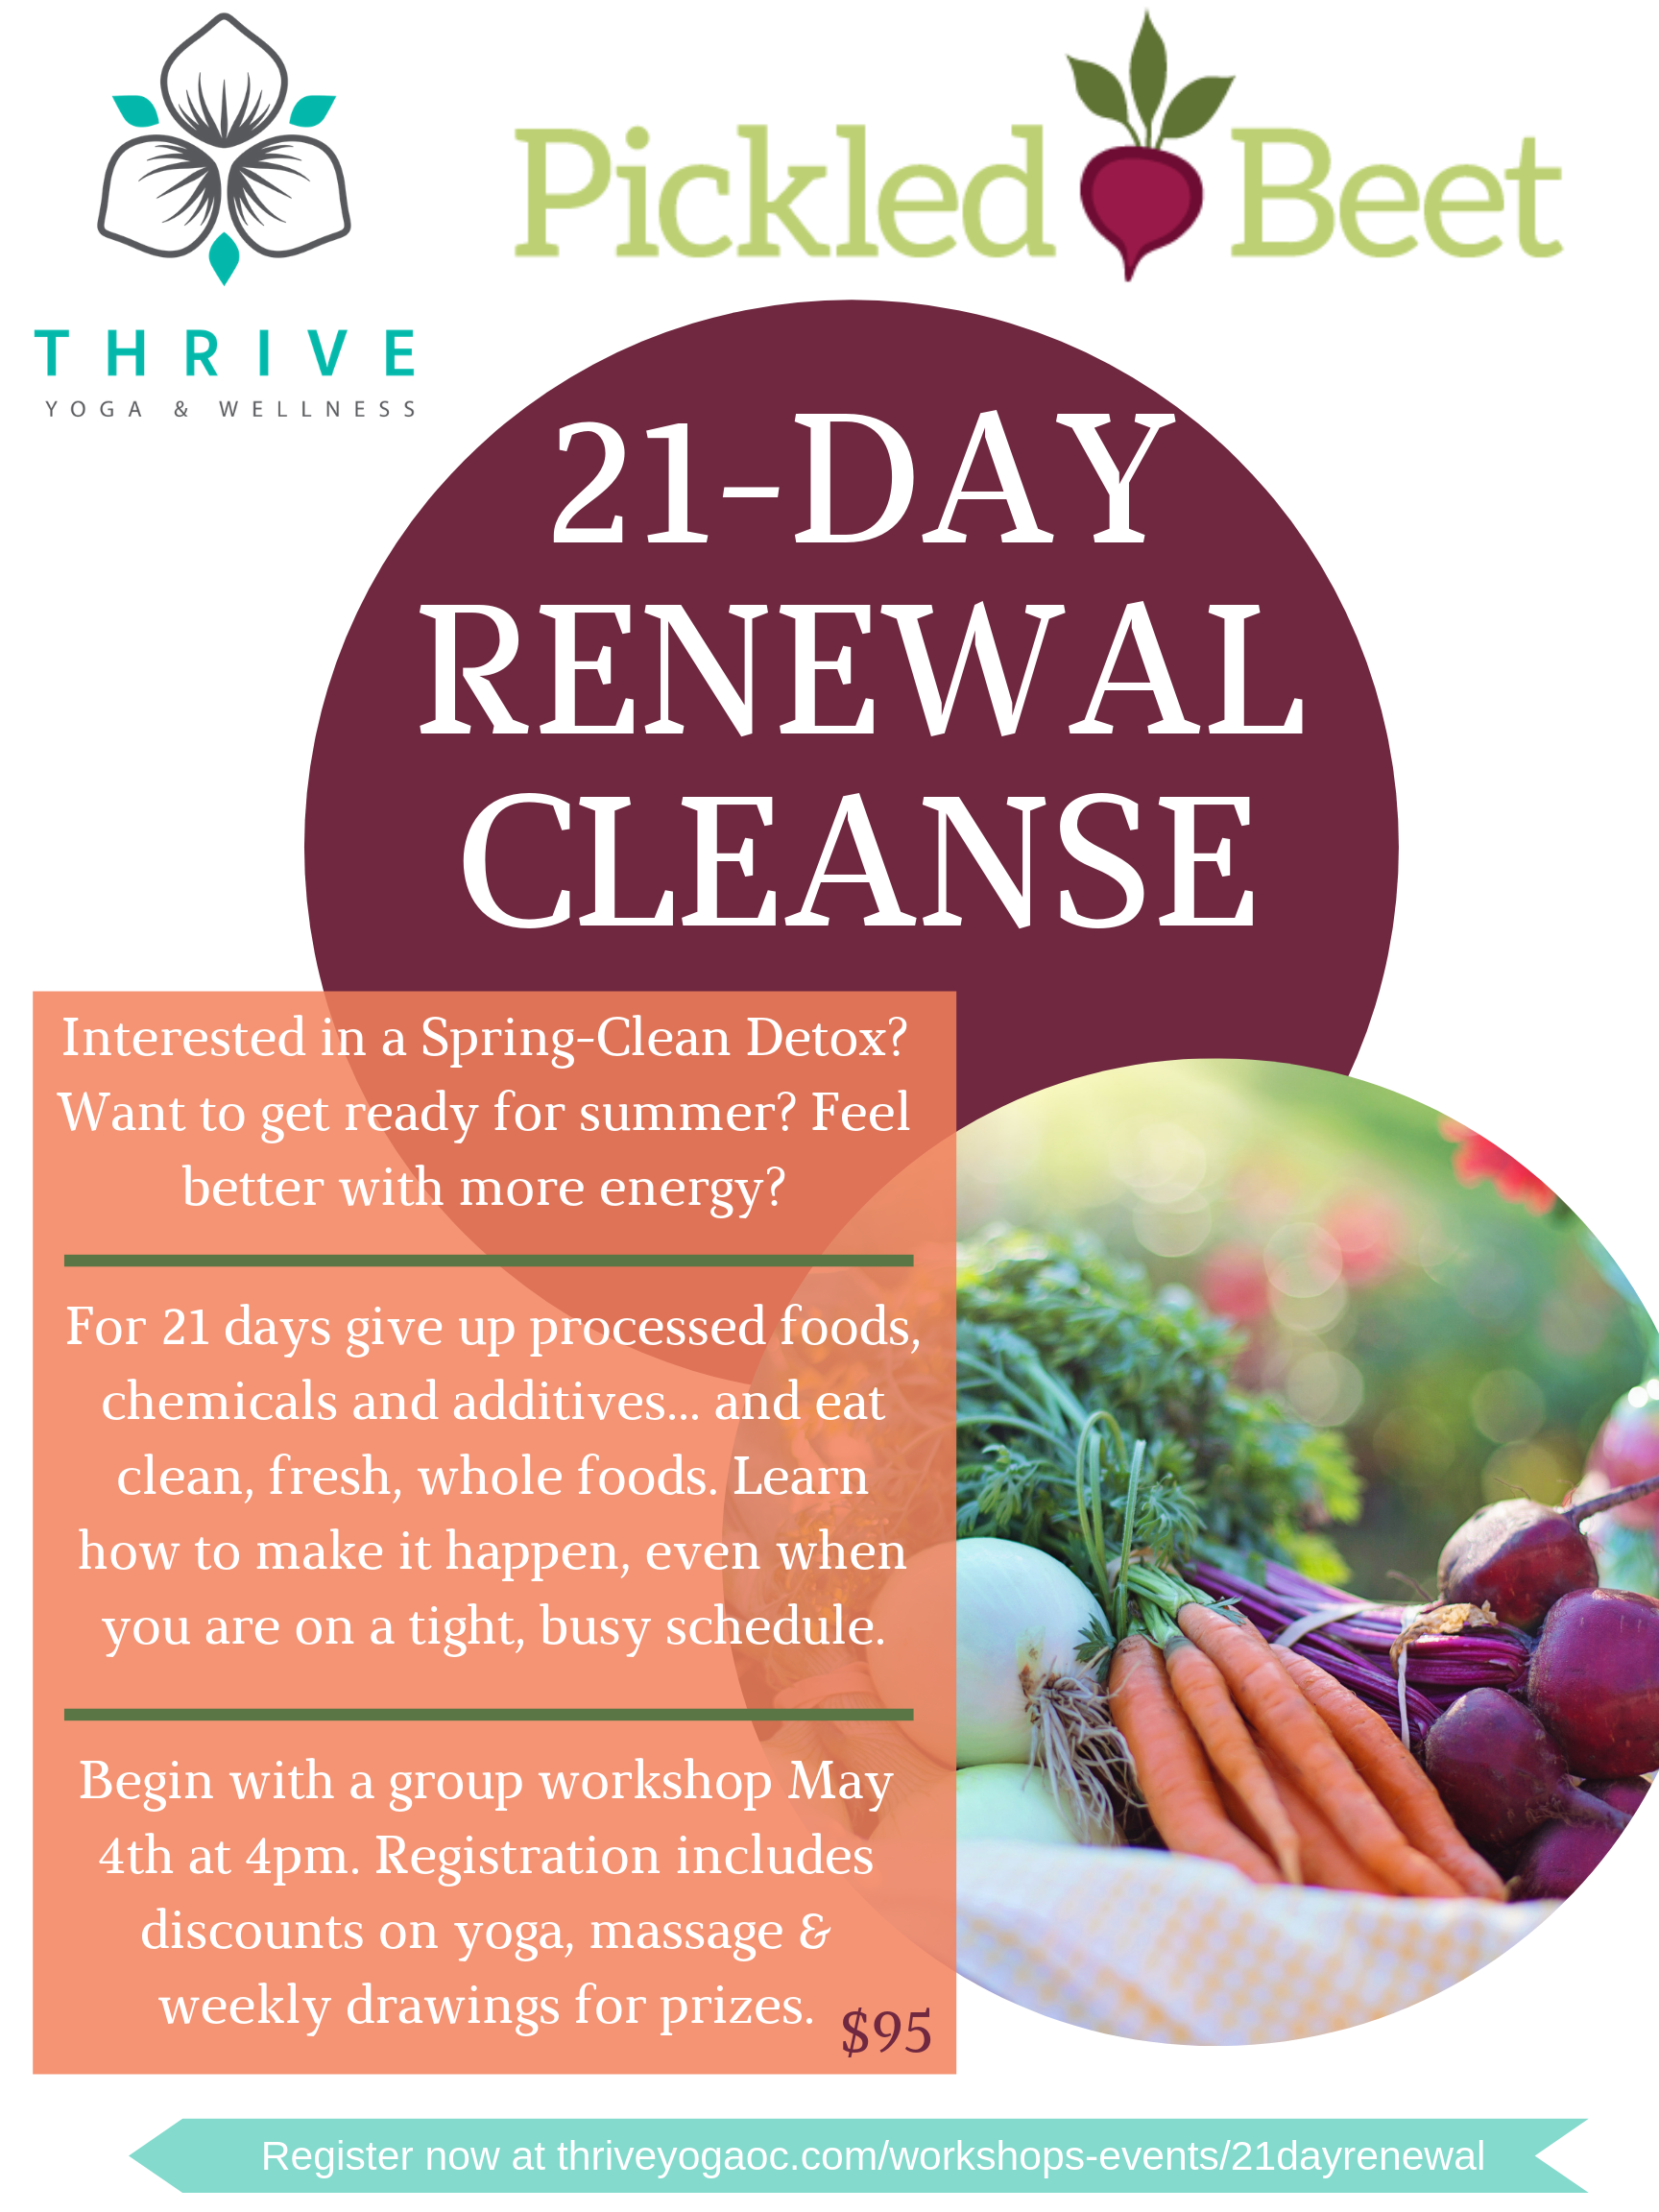 "Join Pickled Beet's 21 Day Renewal Cleanse to get ready for summer! We will meet Saturday, May 4, at 4pm where you will receive informational materials to aid in your success. The rest of your journey will continue in ""The Pickled Beet 21-Day Renewal Cleanse"" Facebook Group, a special group created just for this event! We will discuss meal planning, meal prepping, share recipes, shopping tips, and keep each other accountable, all in the privacy of a closed Facebook group led by a certified nutritionist. You'll be amazed at what 21 days can do for you: Eliminate sugar cravings Balance blood sugar levels Boost metabolism Improve sleep Reduce inflammation Improve digestion Jump start weight loss The challenge is only 21 days - three weeks - give it a try! Registration includes 20% off a one-month yoga membership or multi-class pass. Weekly drawings for prizes. Additional wellness discounts from our community."